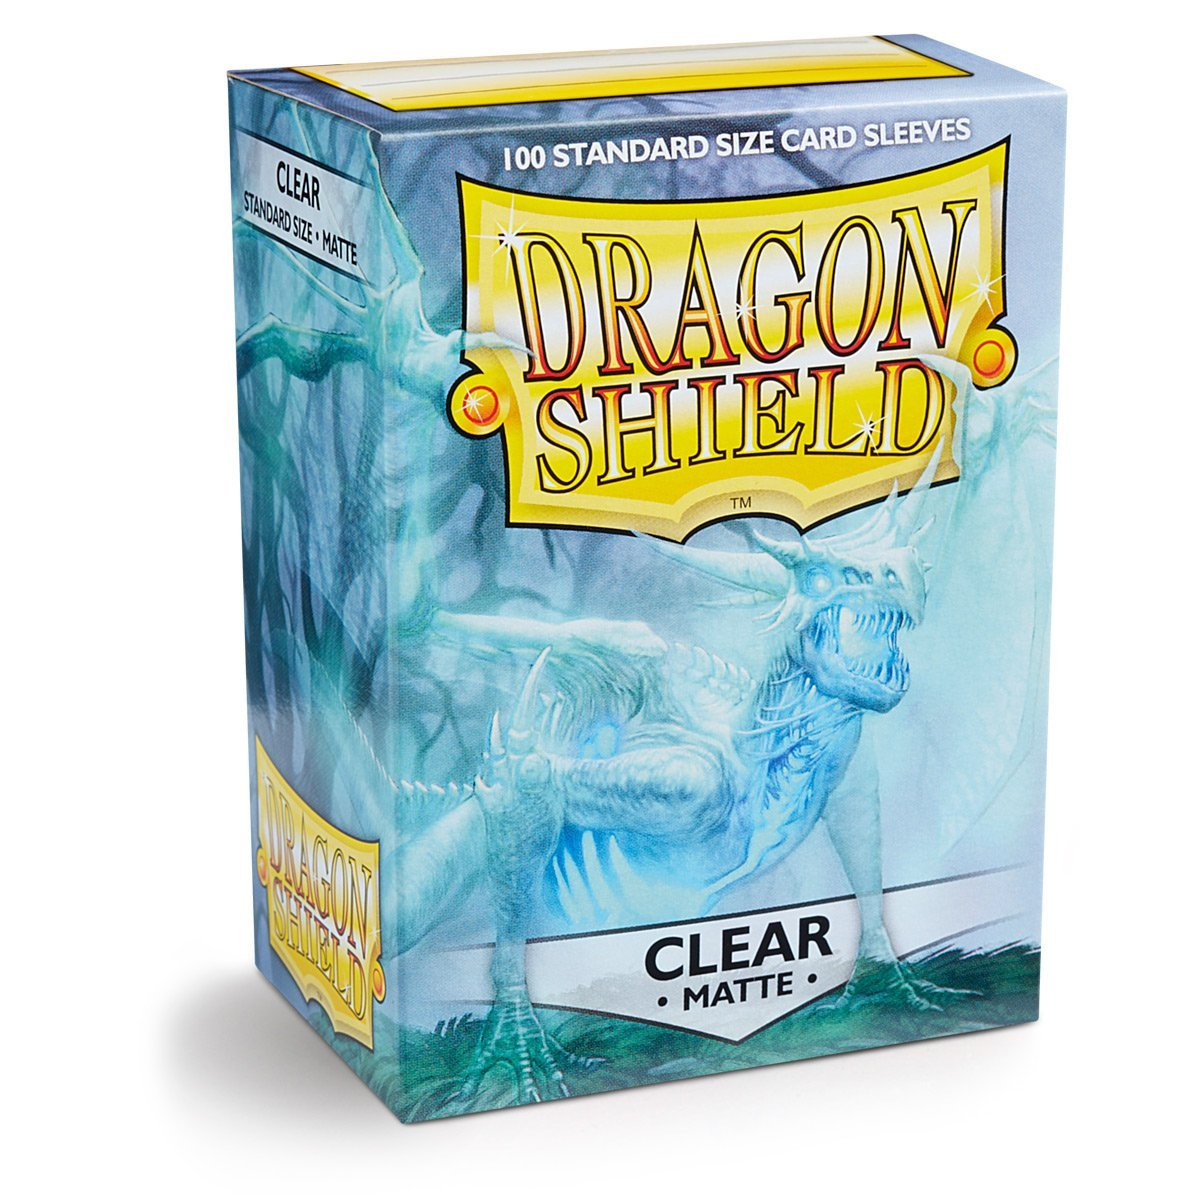 Dragon Shield Matte Clear 100 Deck Protective Sleeves in Box, Standard Size